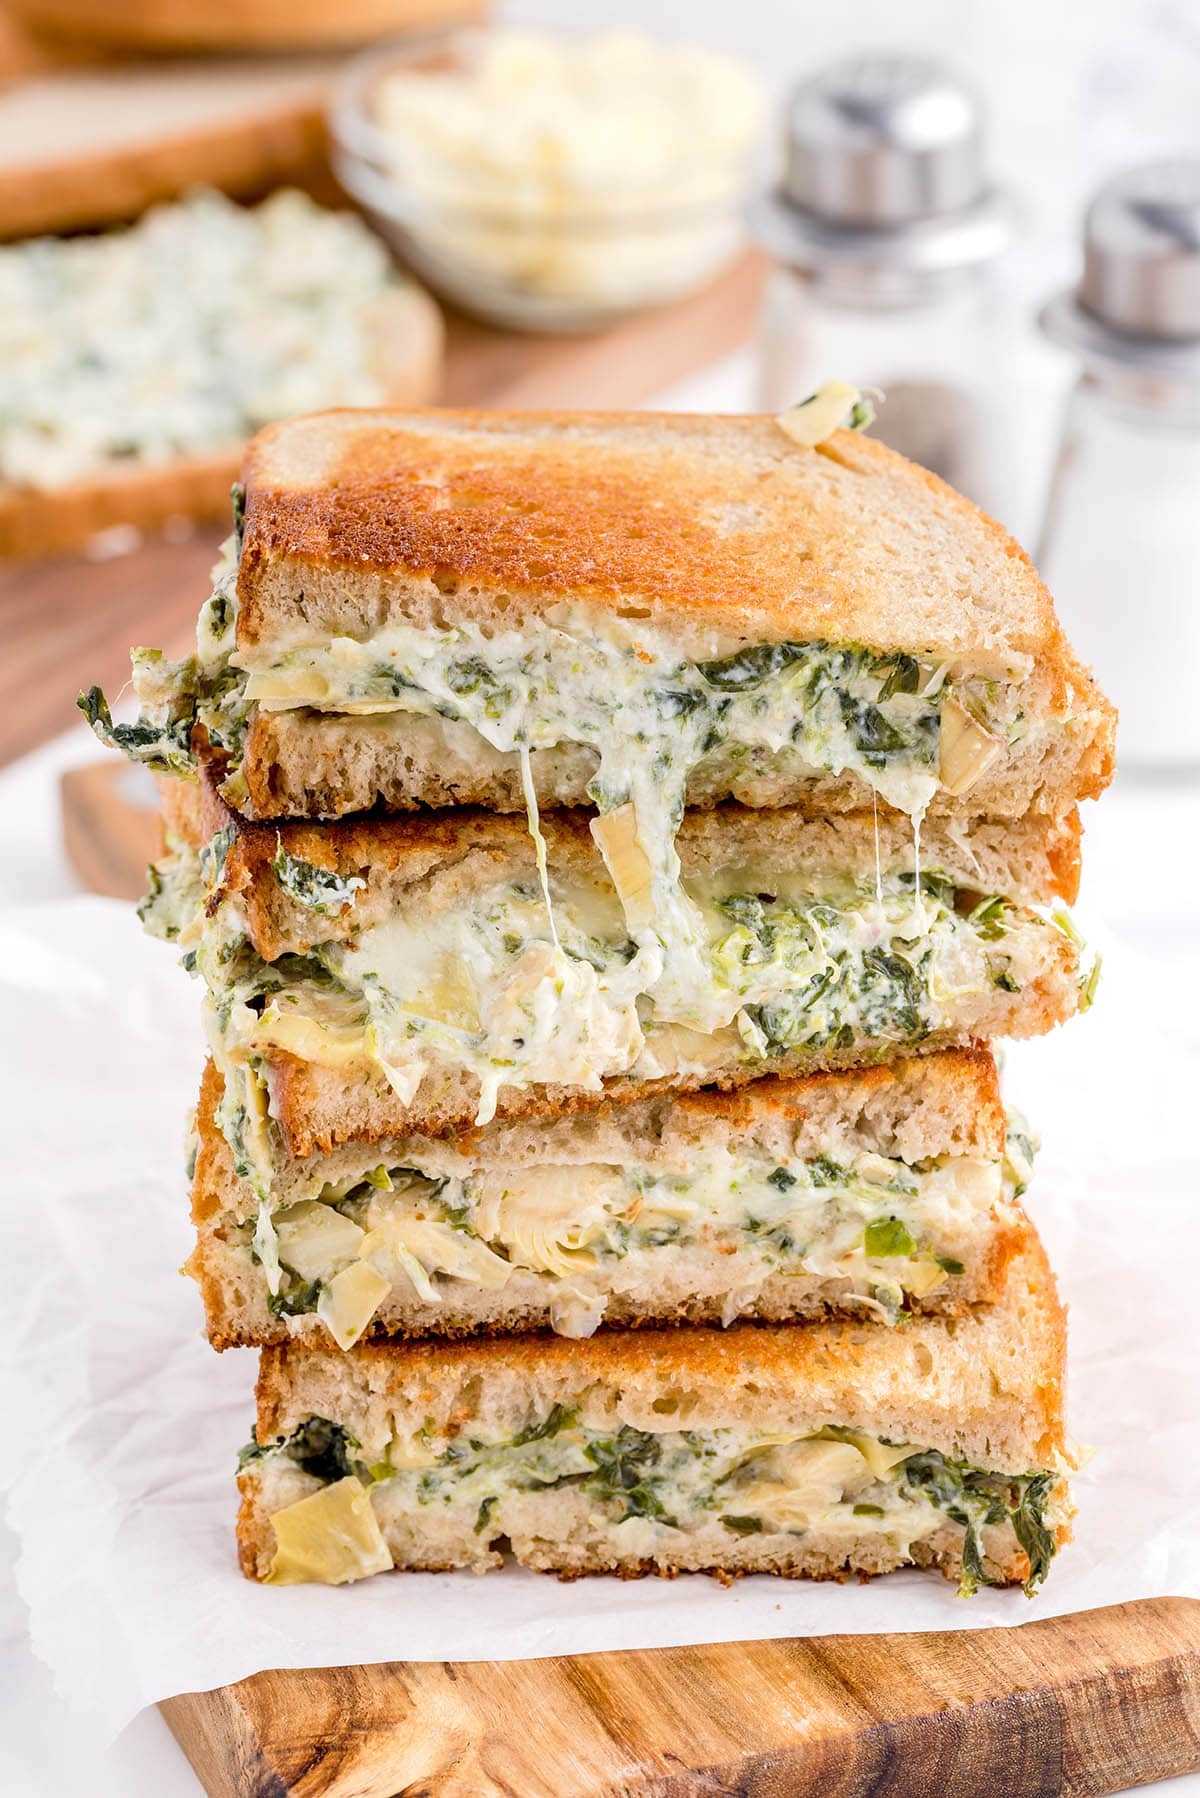 Spinach and Artichoke Grilled Cheese hero image